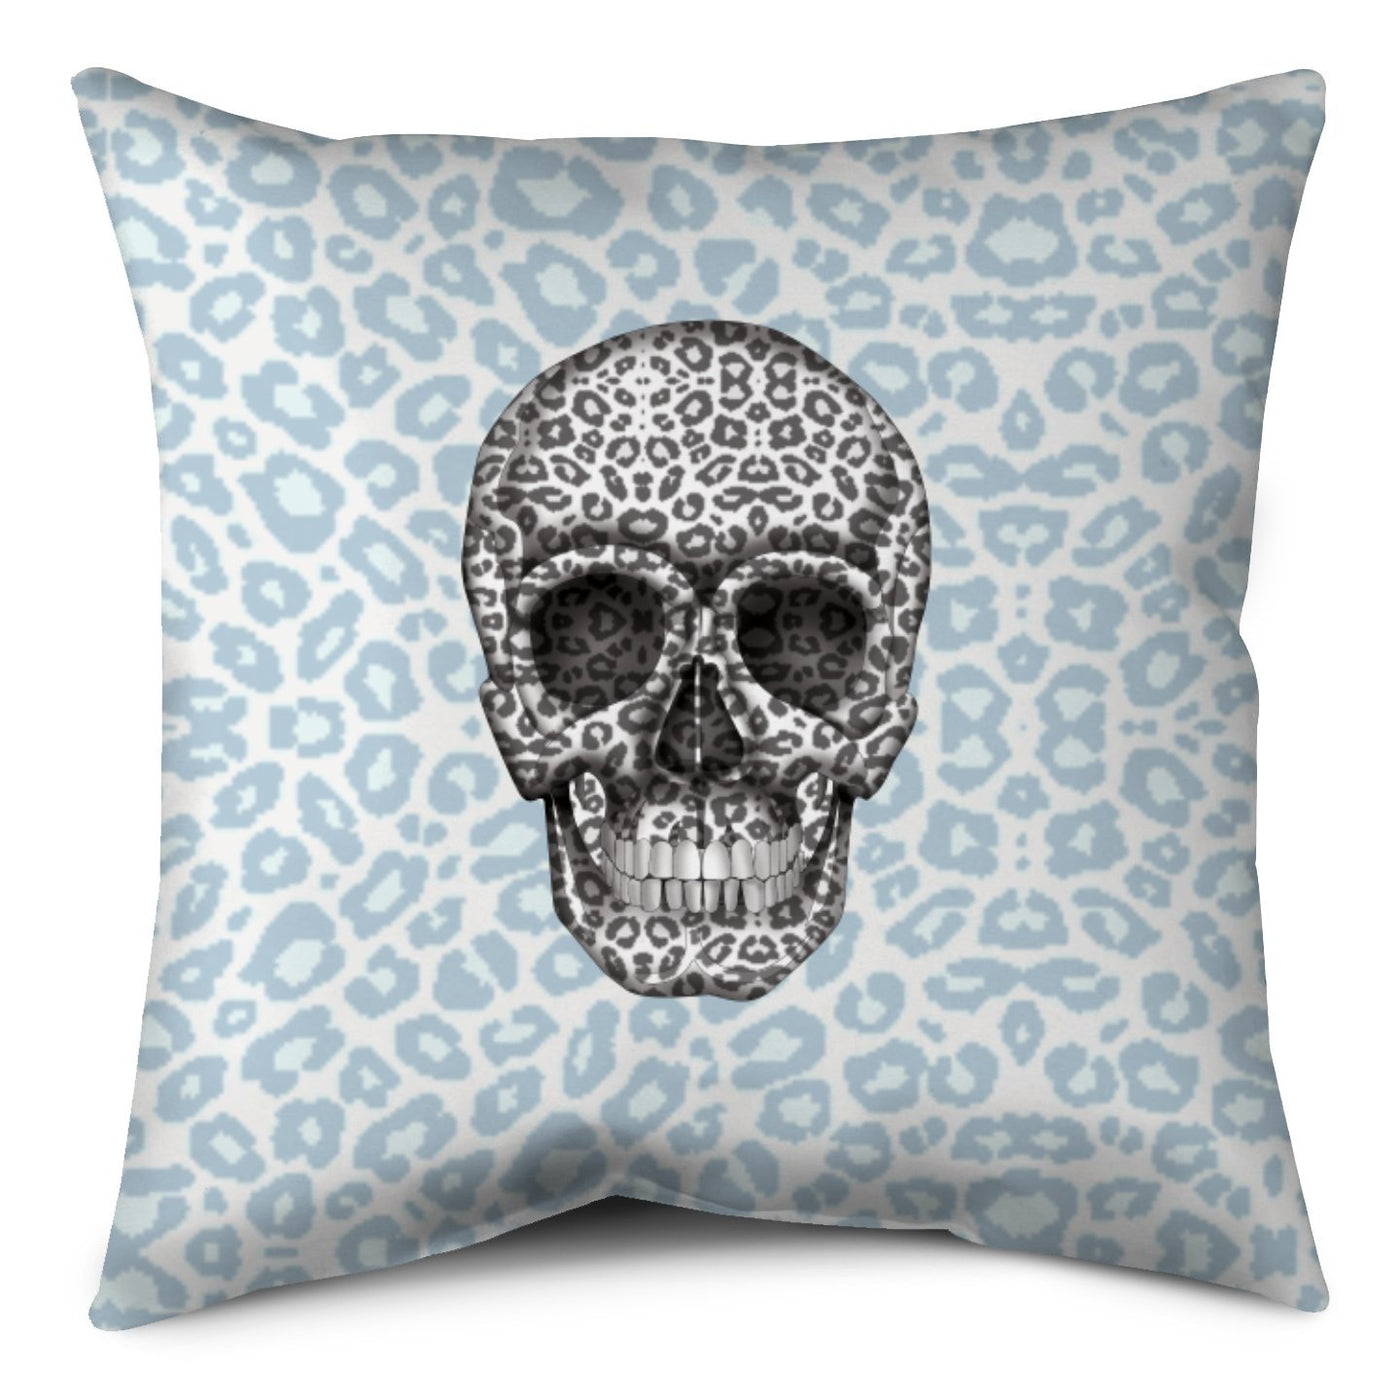 Throw Pillow - Skull Tanzania Nero/Peacock throw LeighDeux, LLC